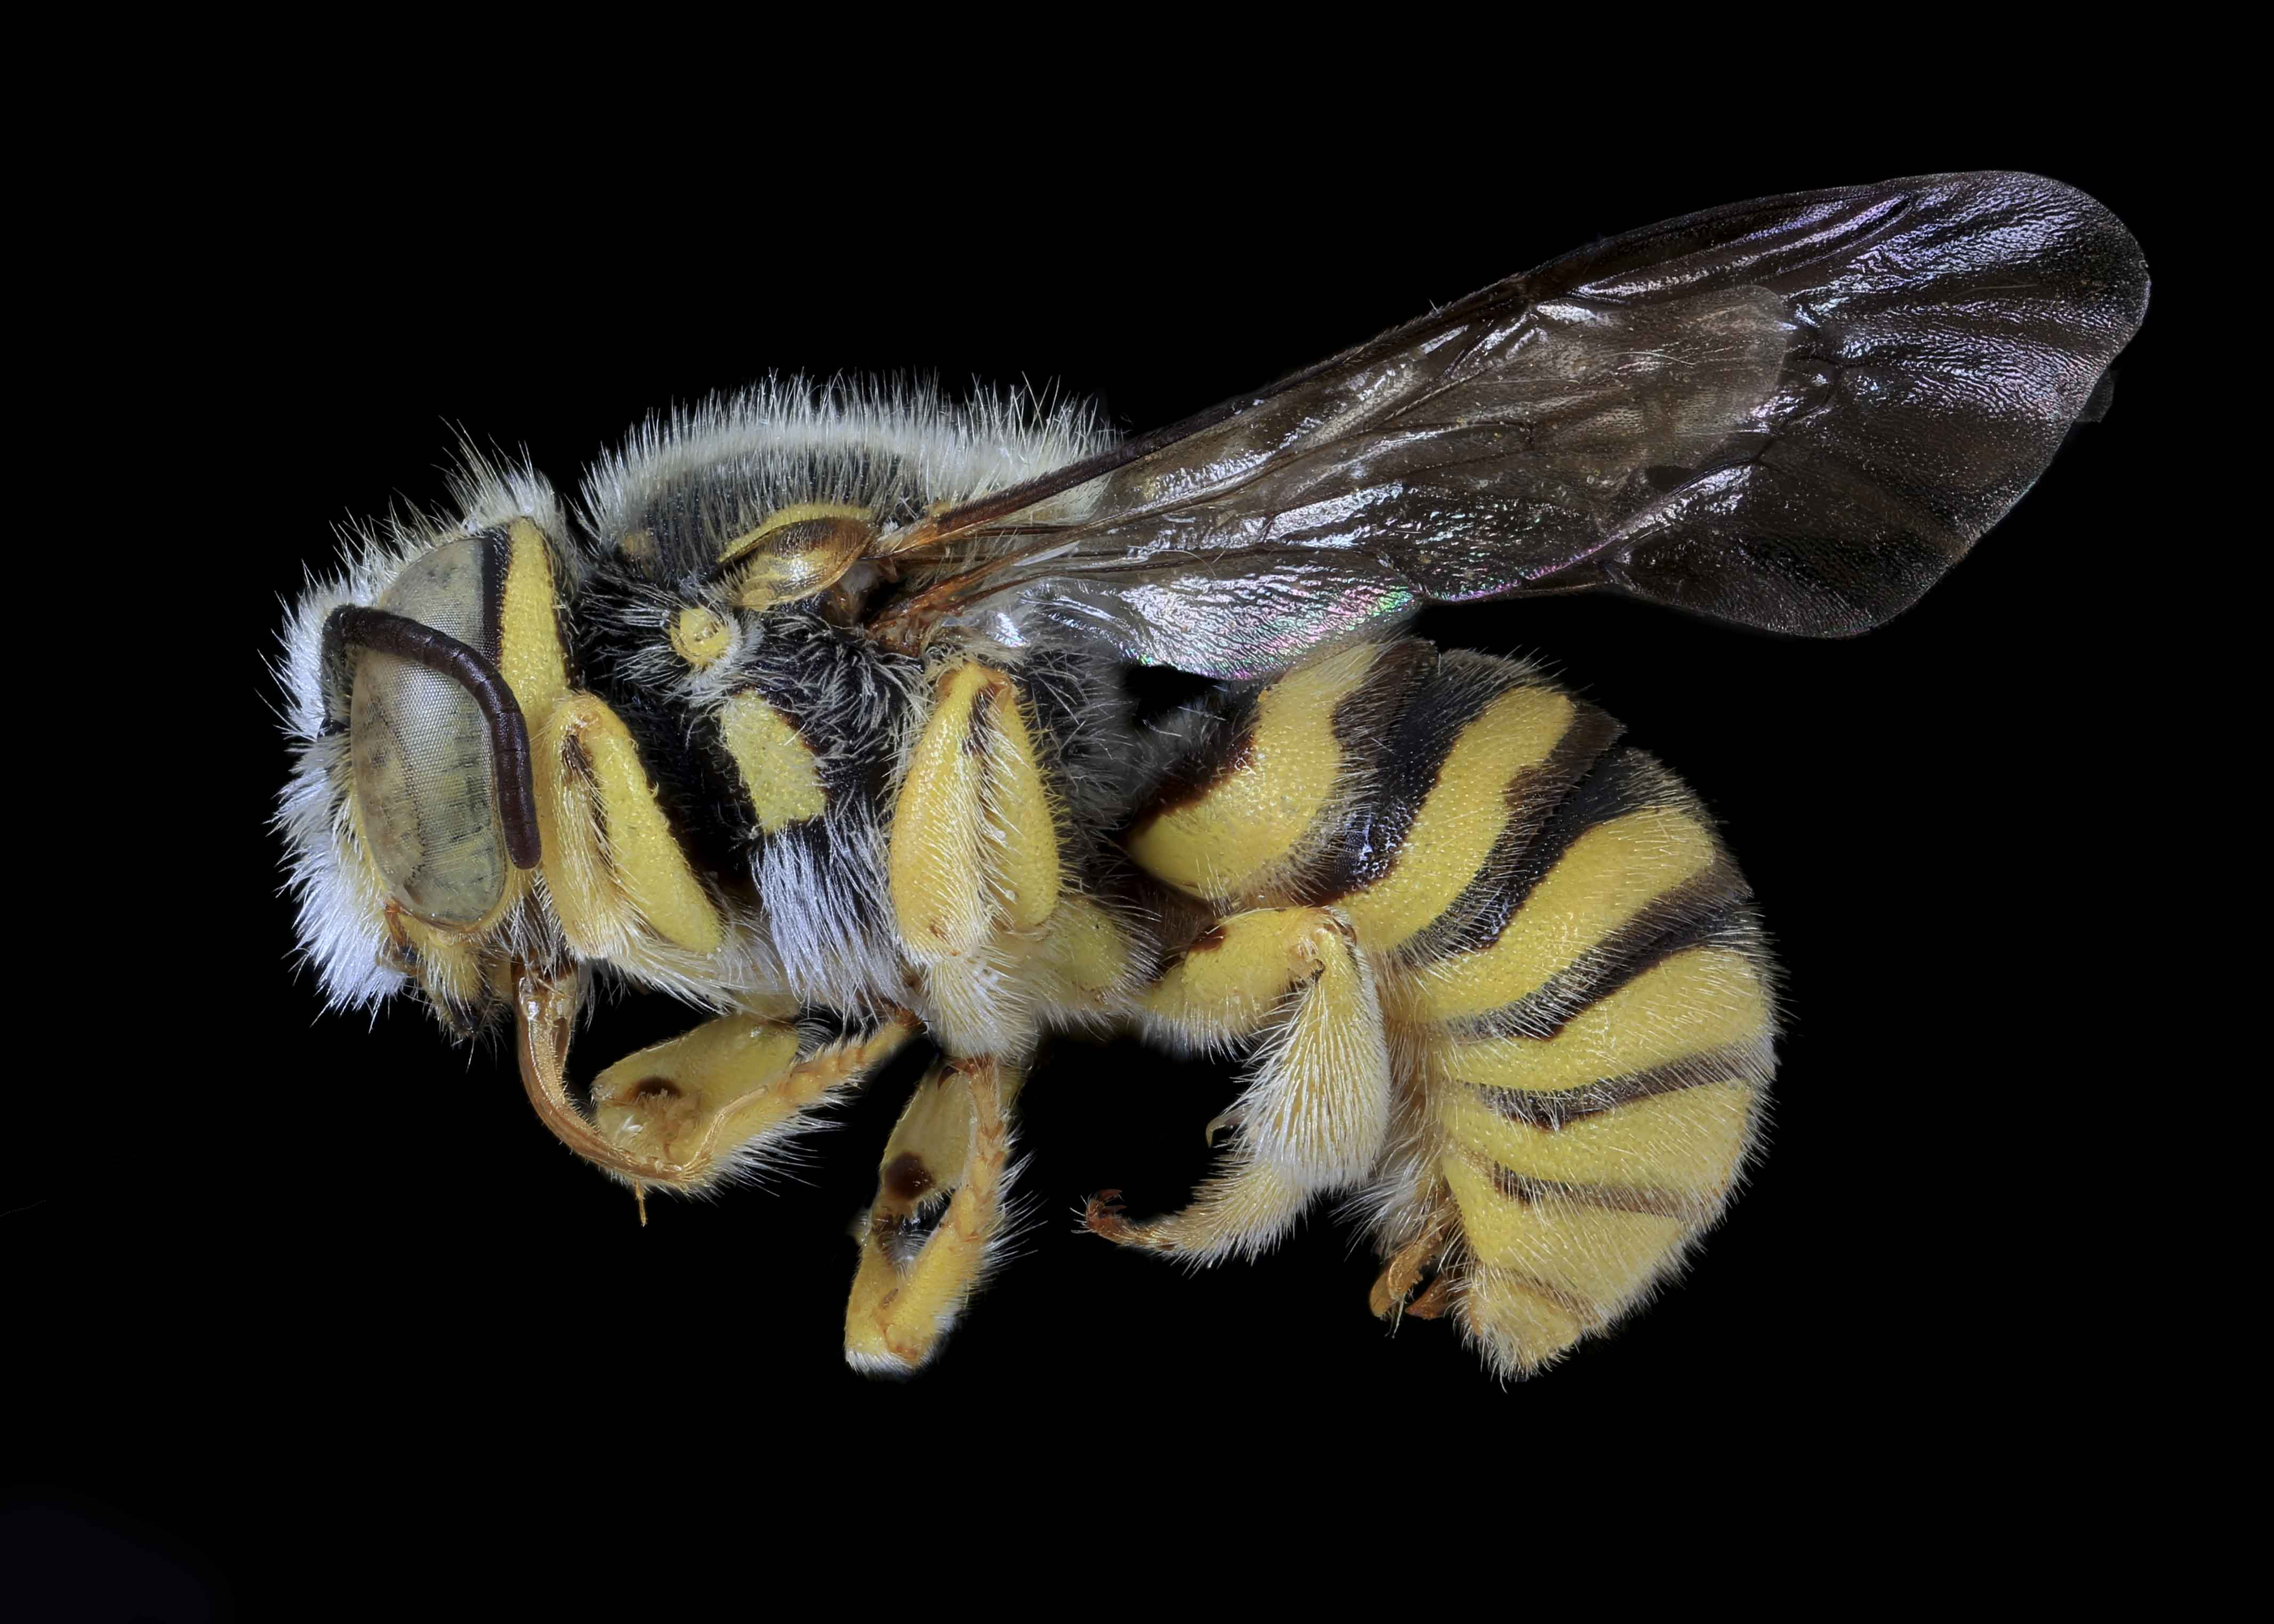 Fig 2.&nbsp;<em>Acedanthidium&nbsp;</em>sp. male lateral habitus.  Photo: C. Ritner  &copy; Division of Entomology, University of Kansas Biodiversity Institute